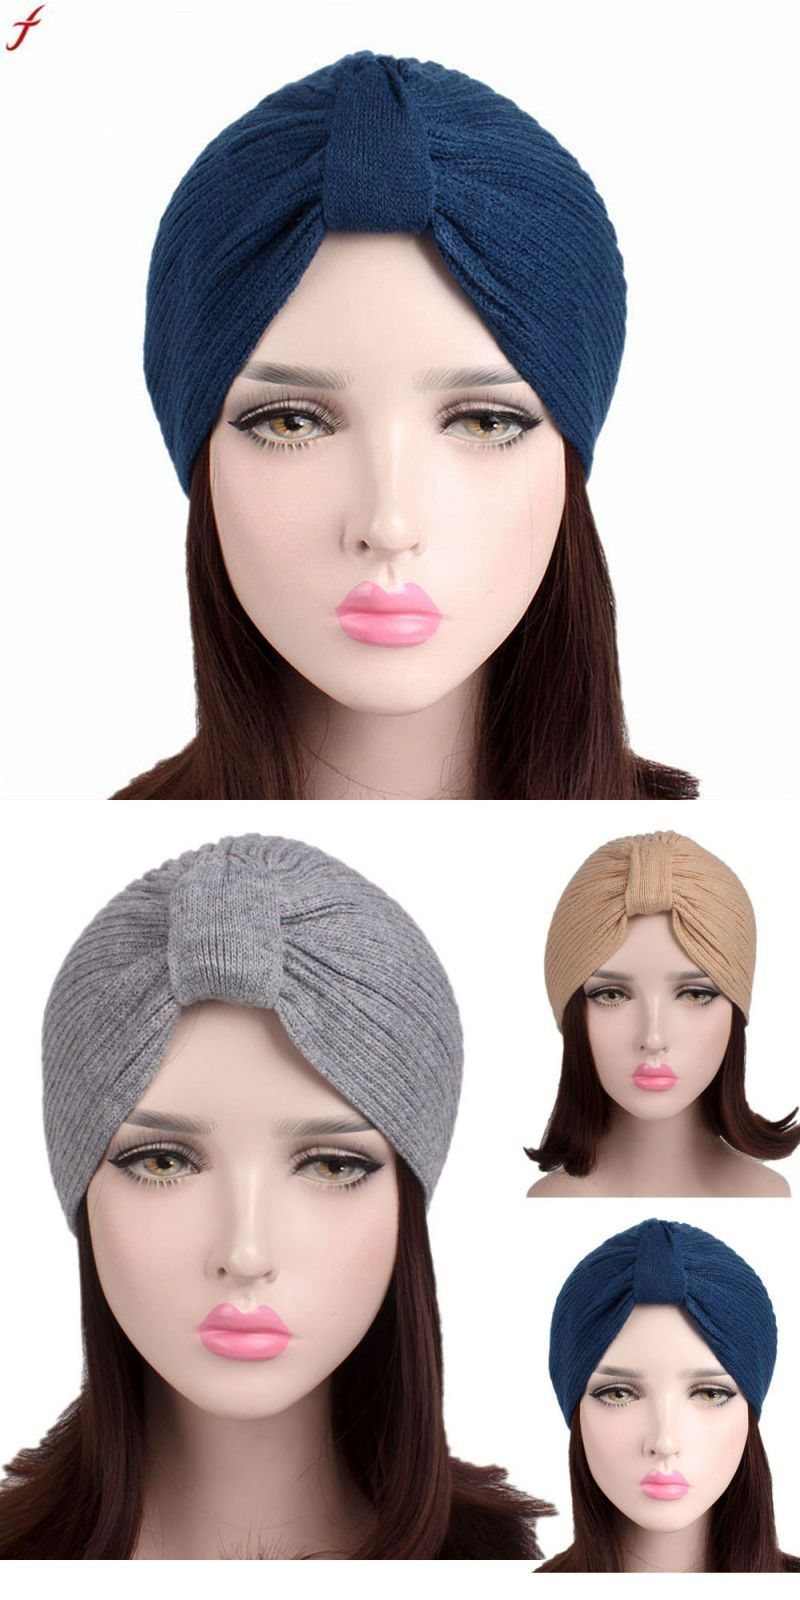 d5e5528843b Autumn winter knitted wool hats for women ladies 2018 retro hip-hop  skullies beanie warm hat turban caps bonnet femme  acrylic  adult  women   casual  solid ...